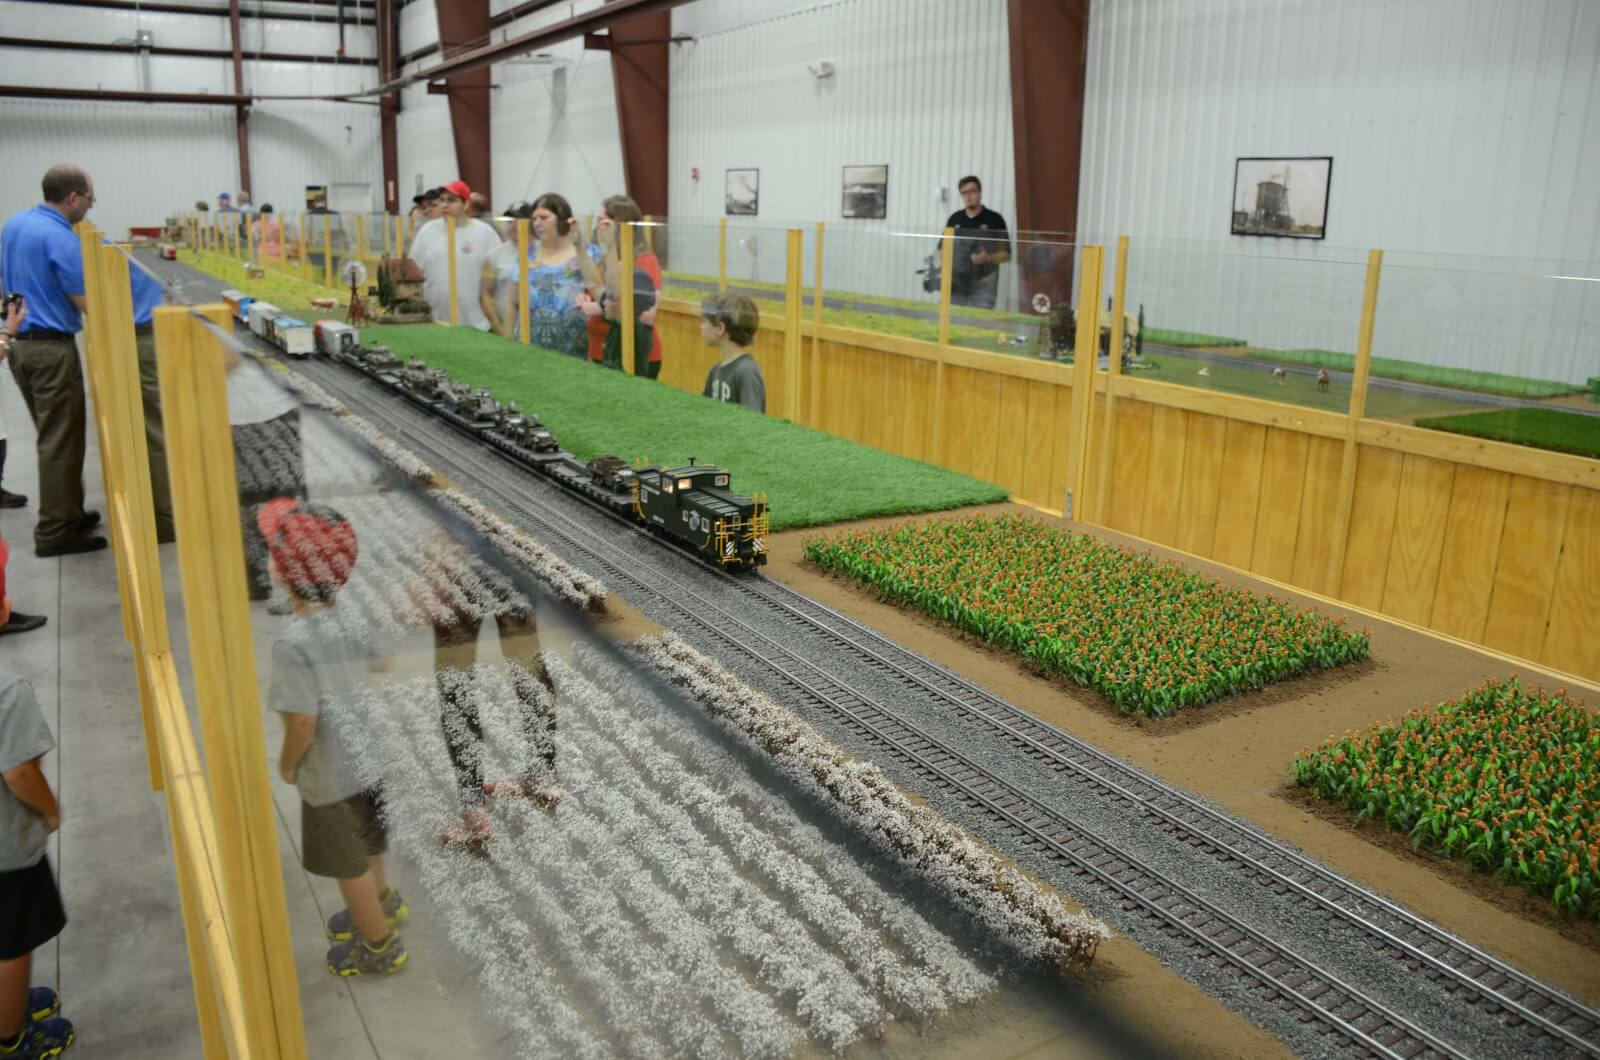 Portion of the G-scale train display